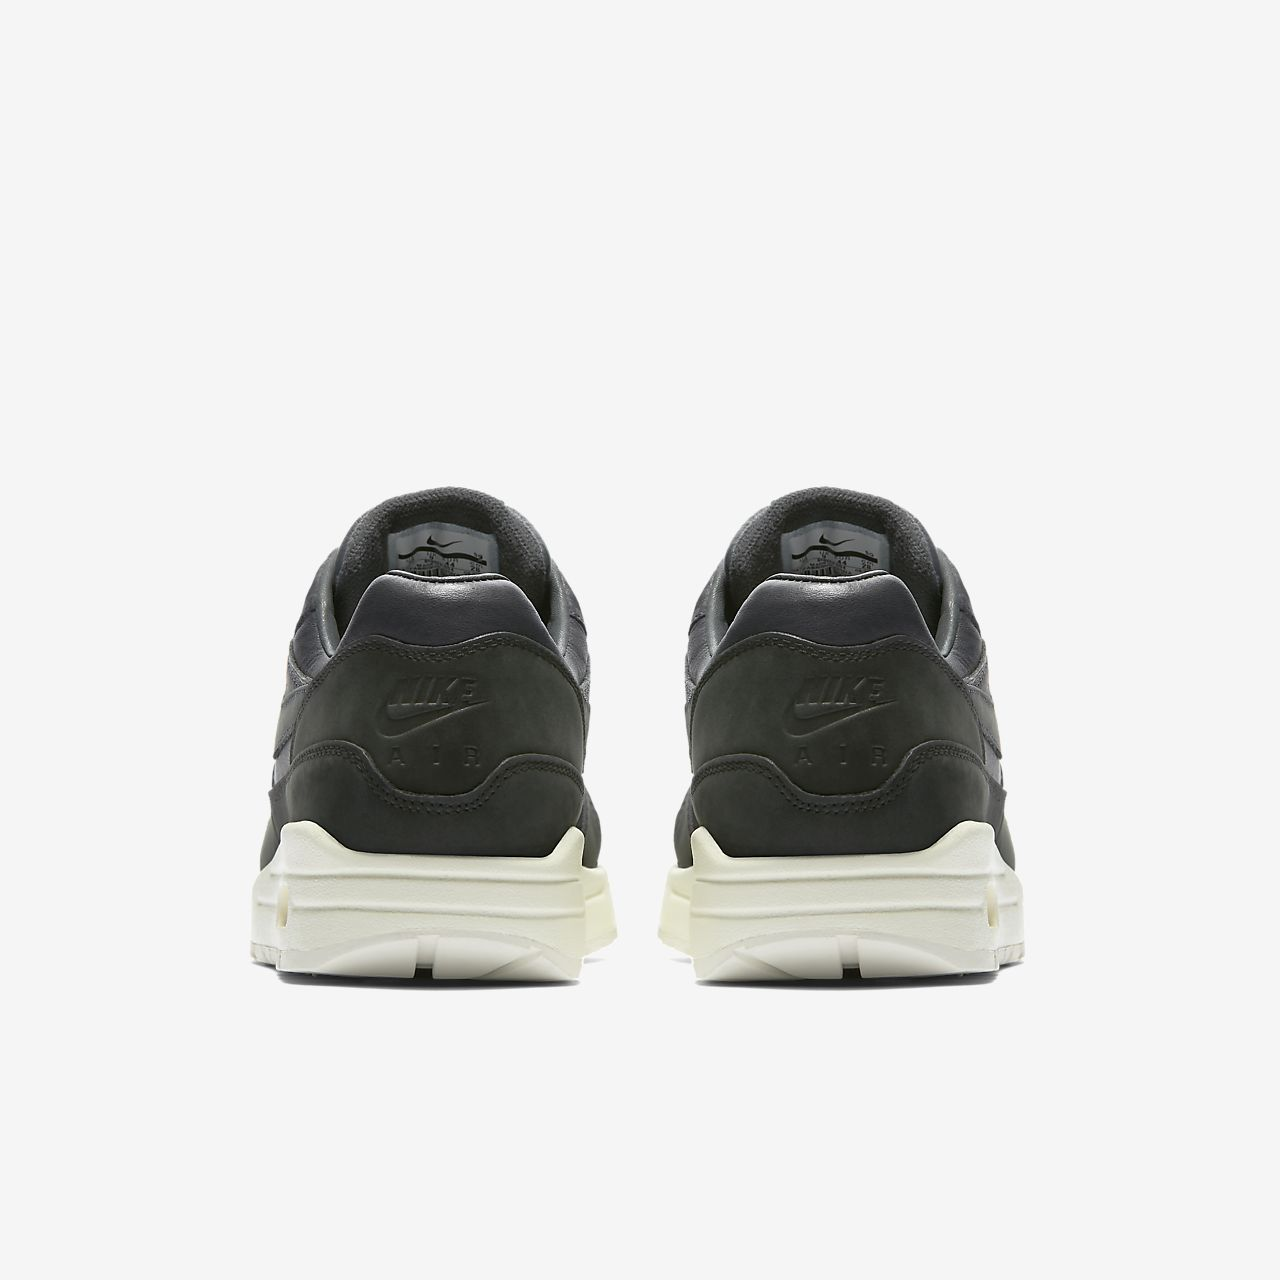 air max 1 pinnacle men's nz